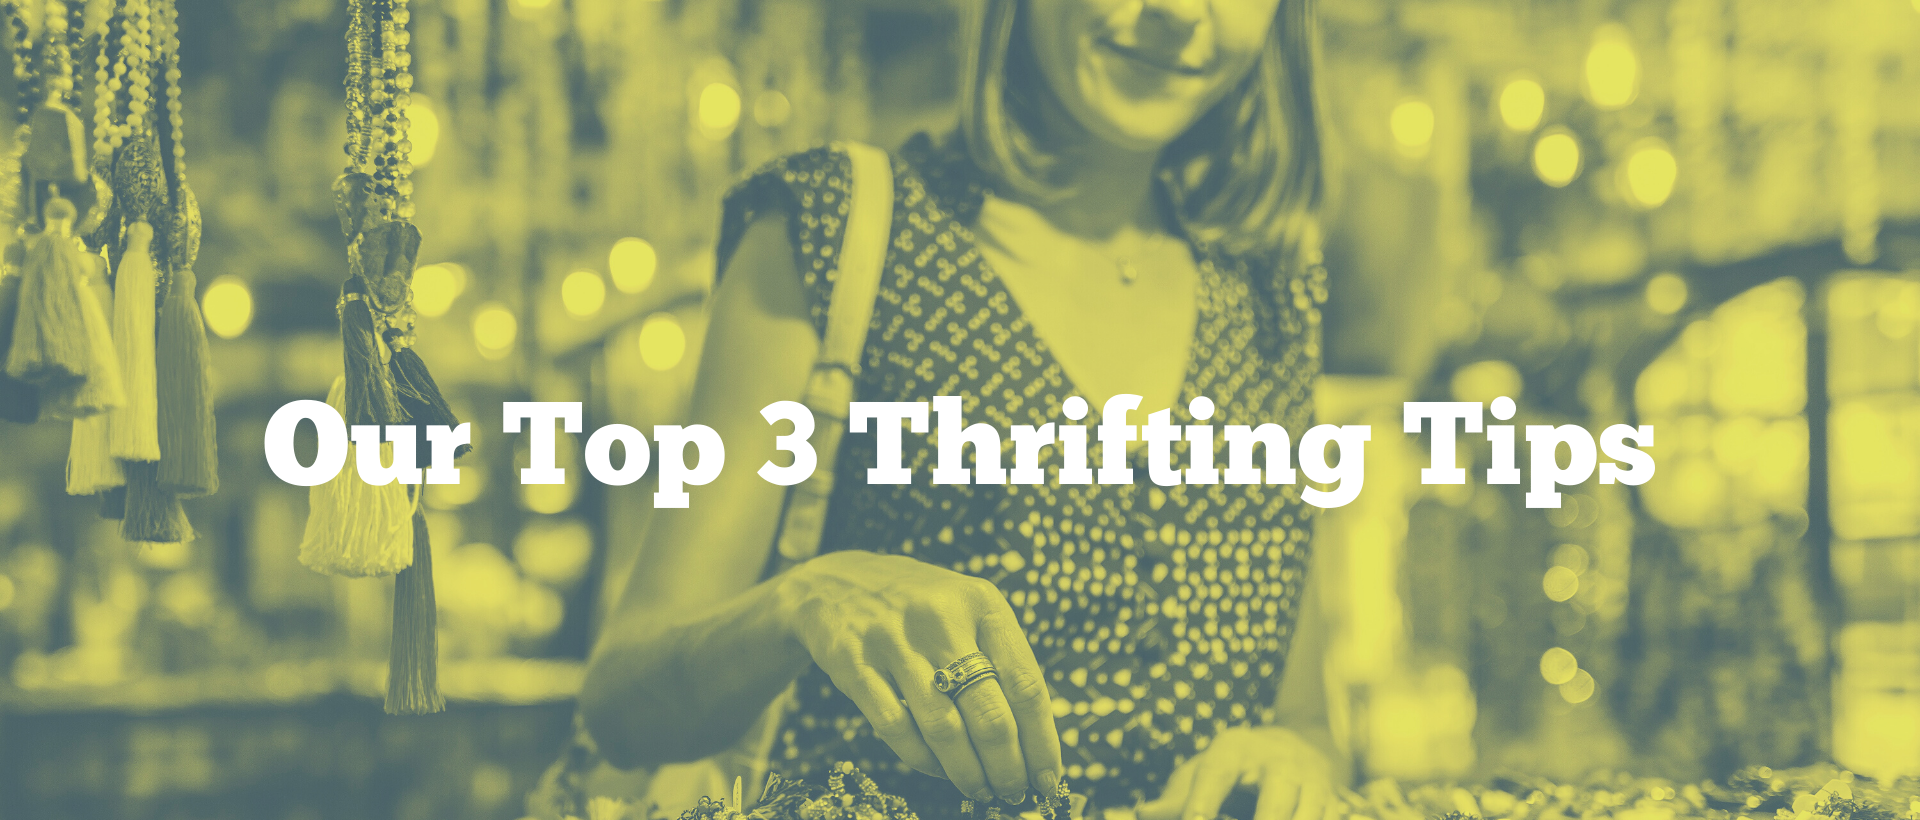 Our Top Three Thrifting Tips